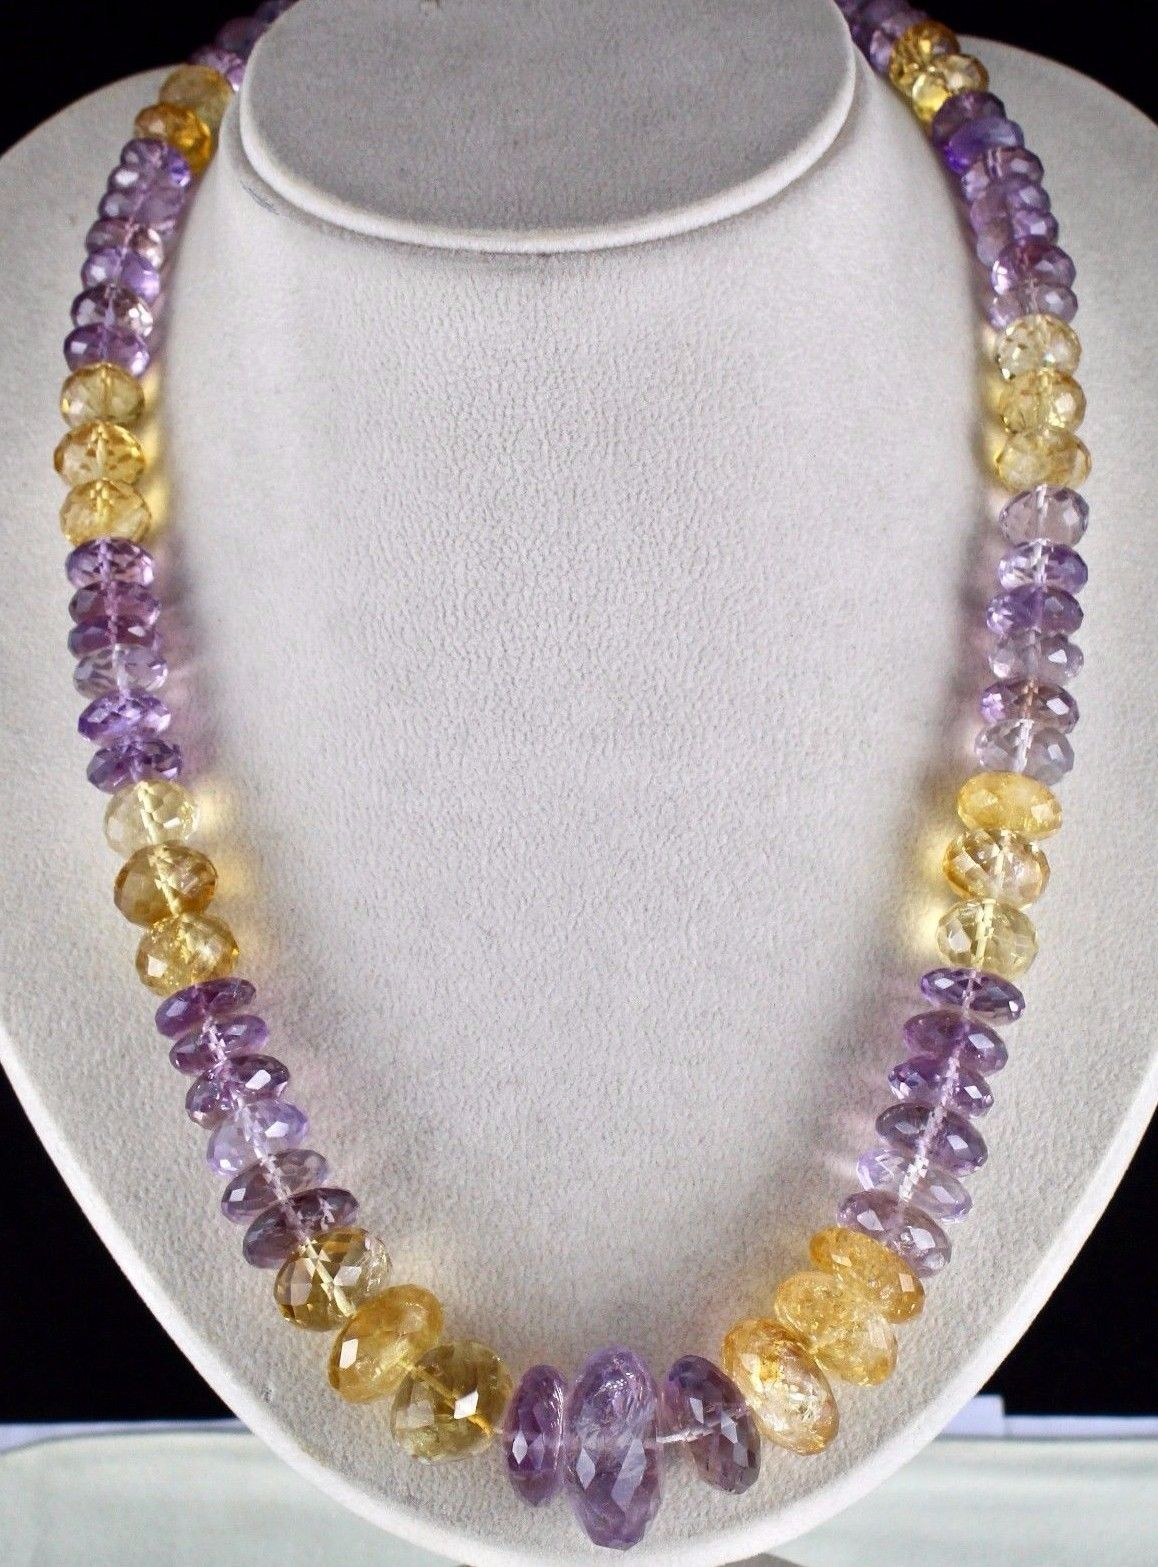 NATURAL CITRINE AMETHYST BEADS FACETED 1 LINE 875 CARATS GEMSTONE NECKLACE